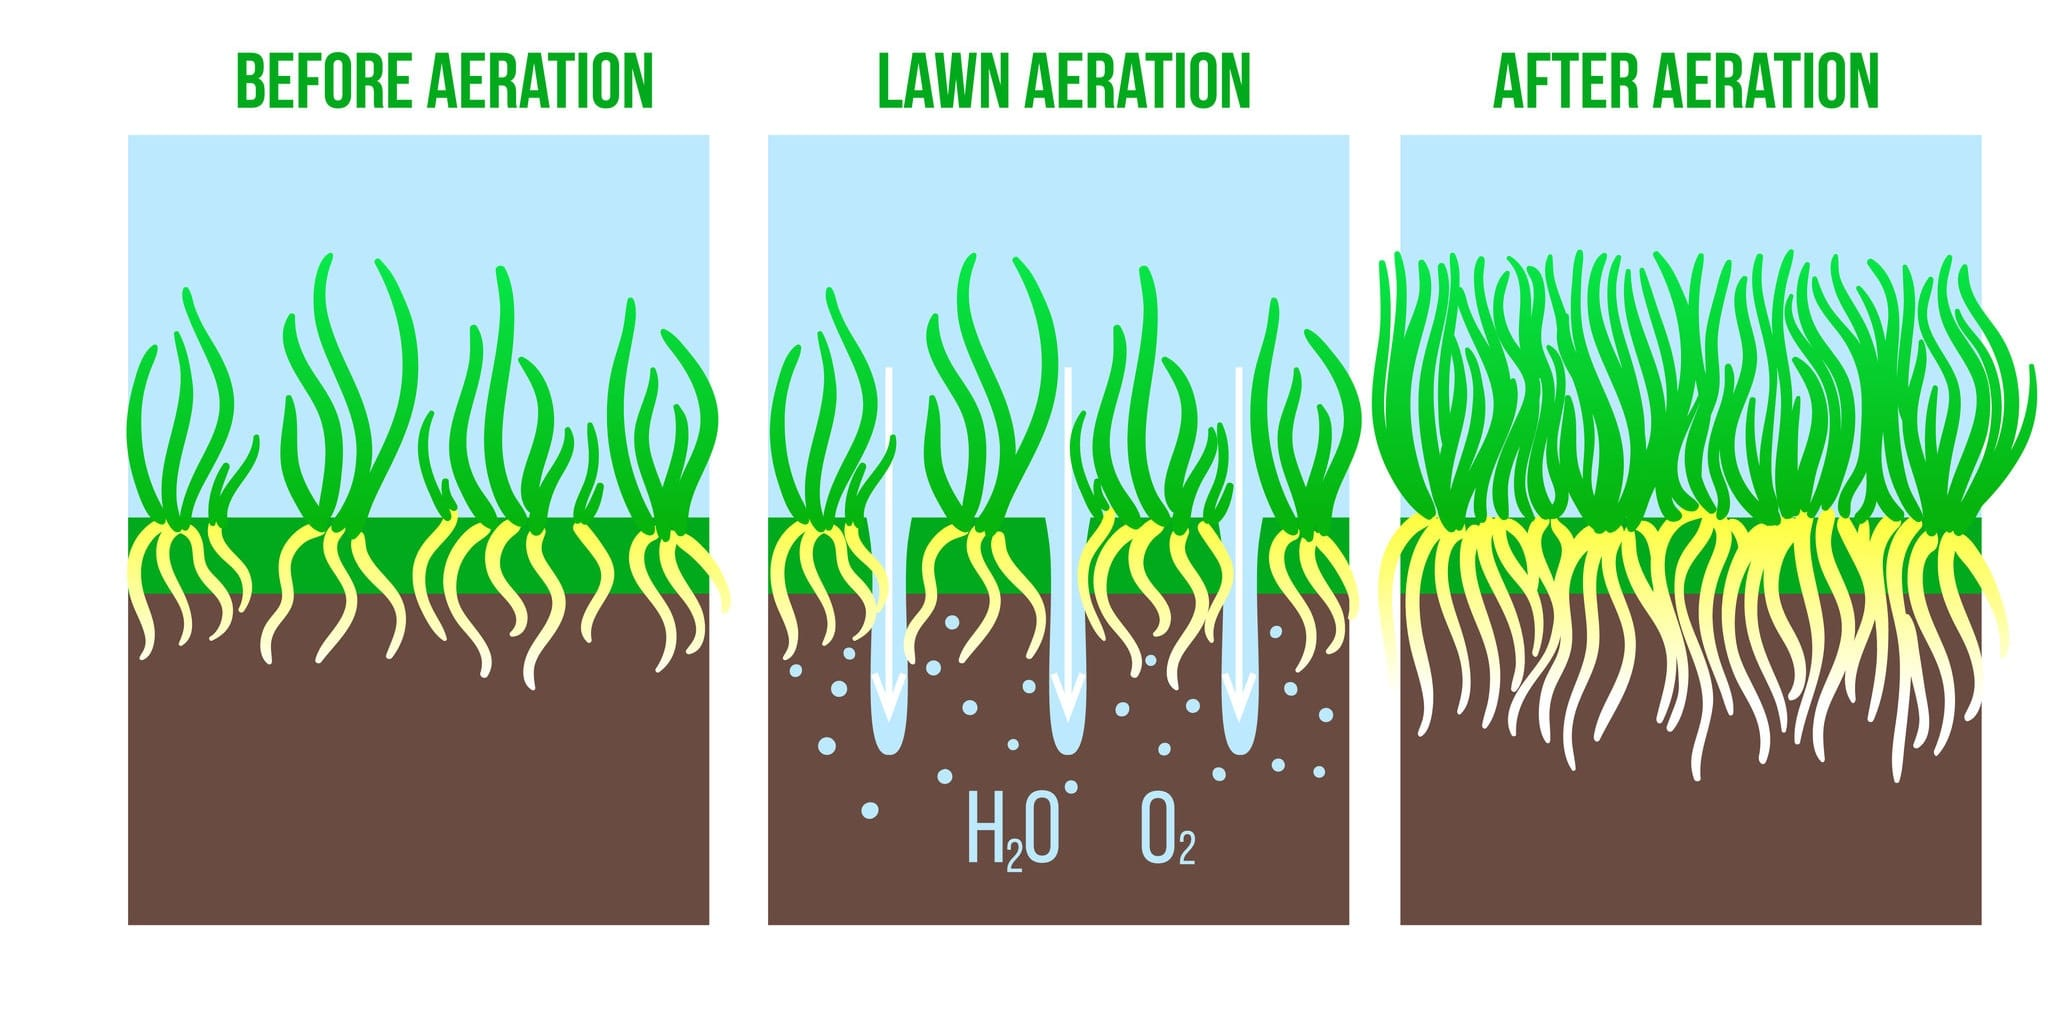 Lawn aeration graphic